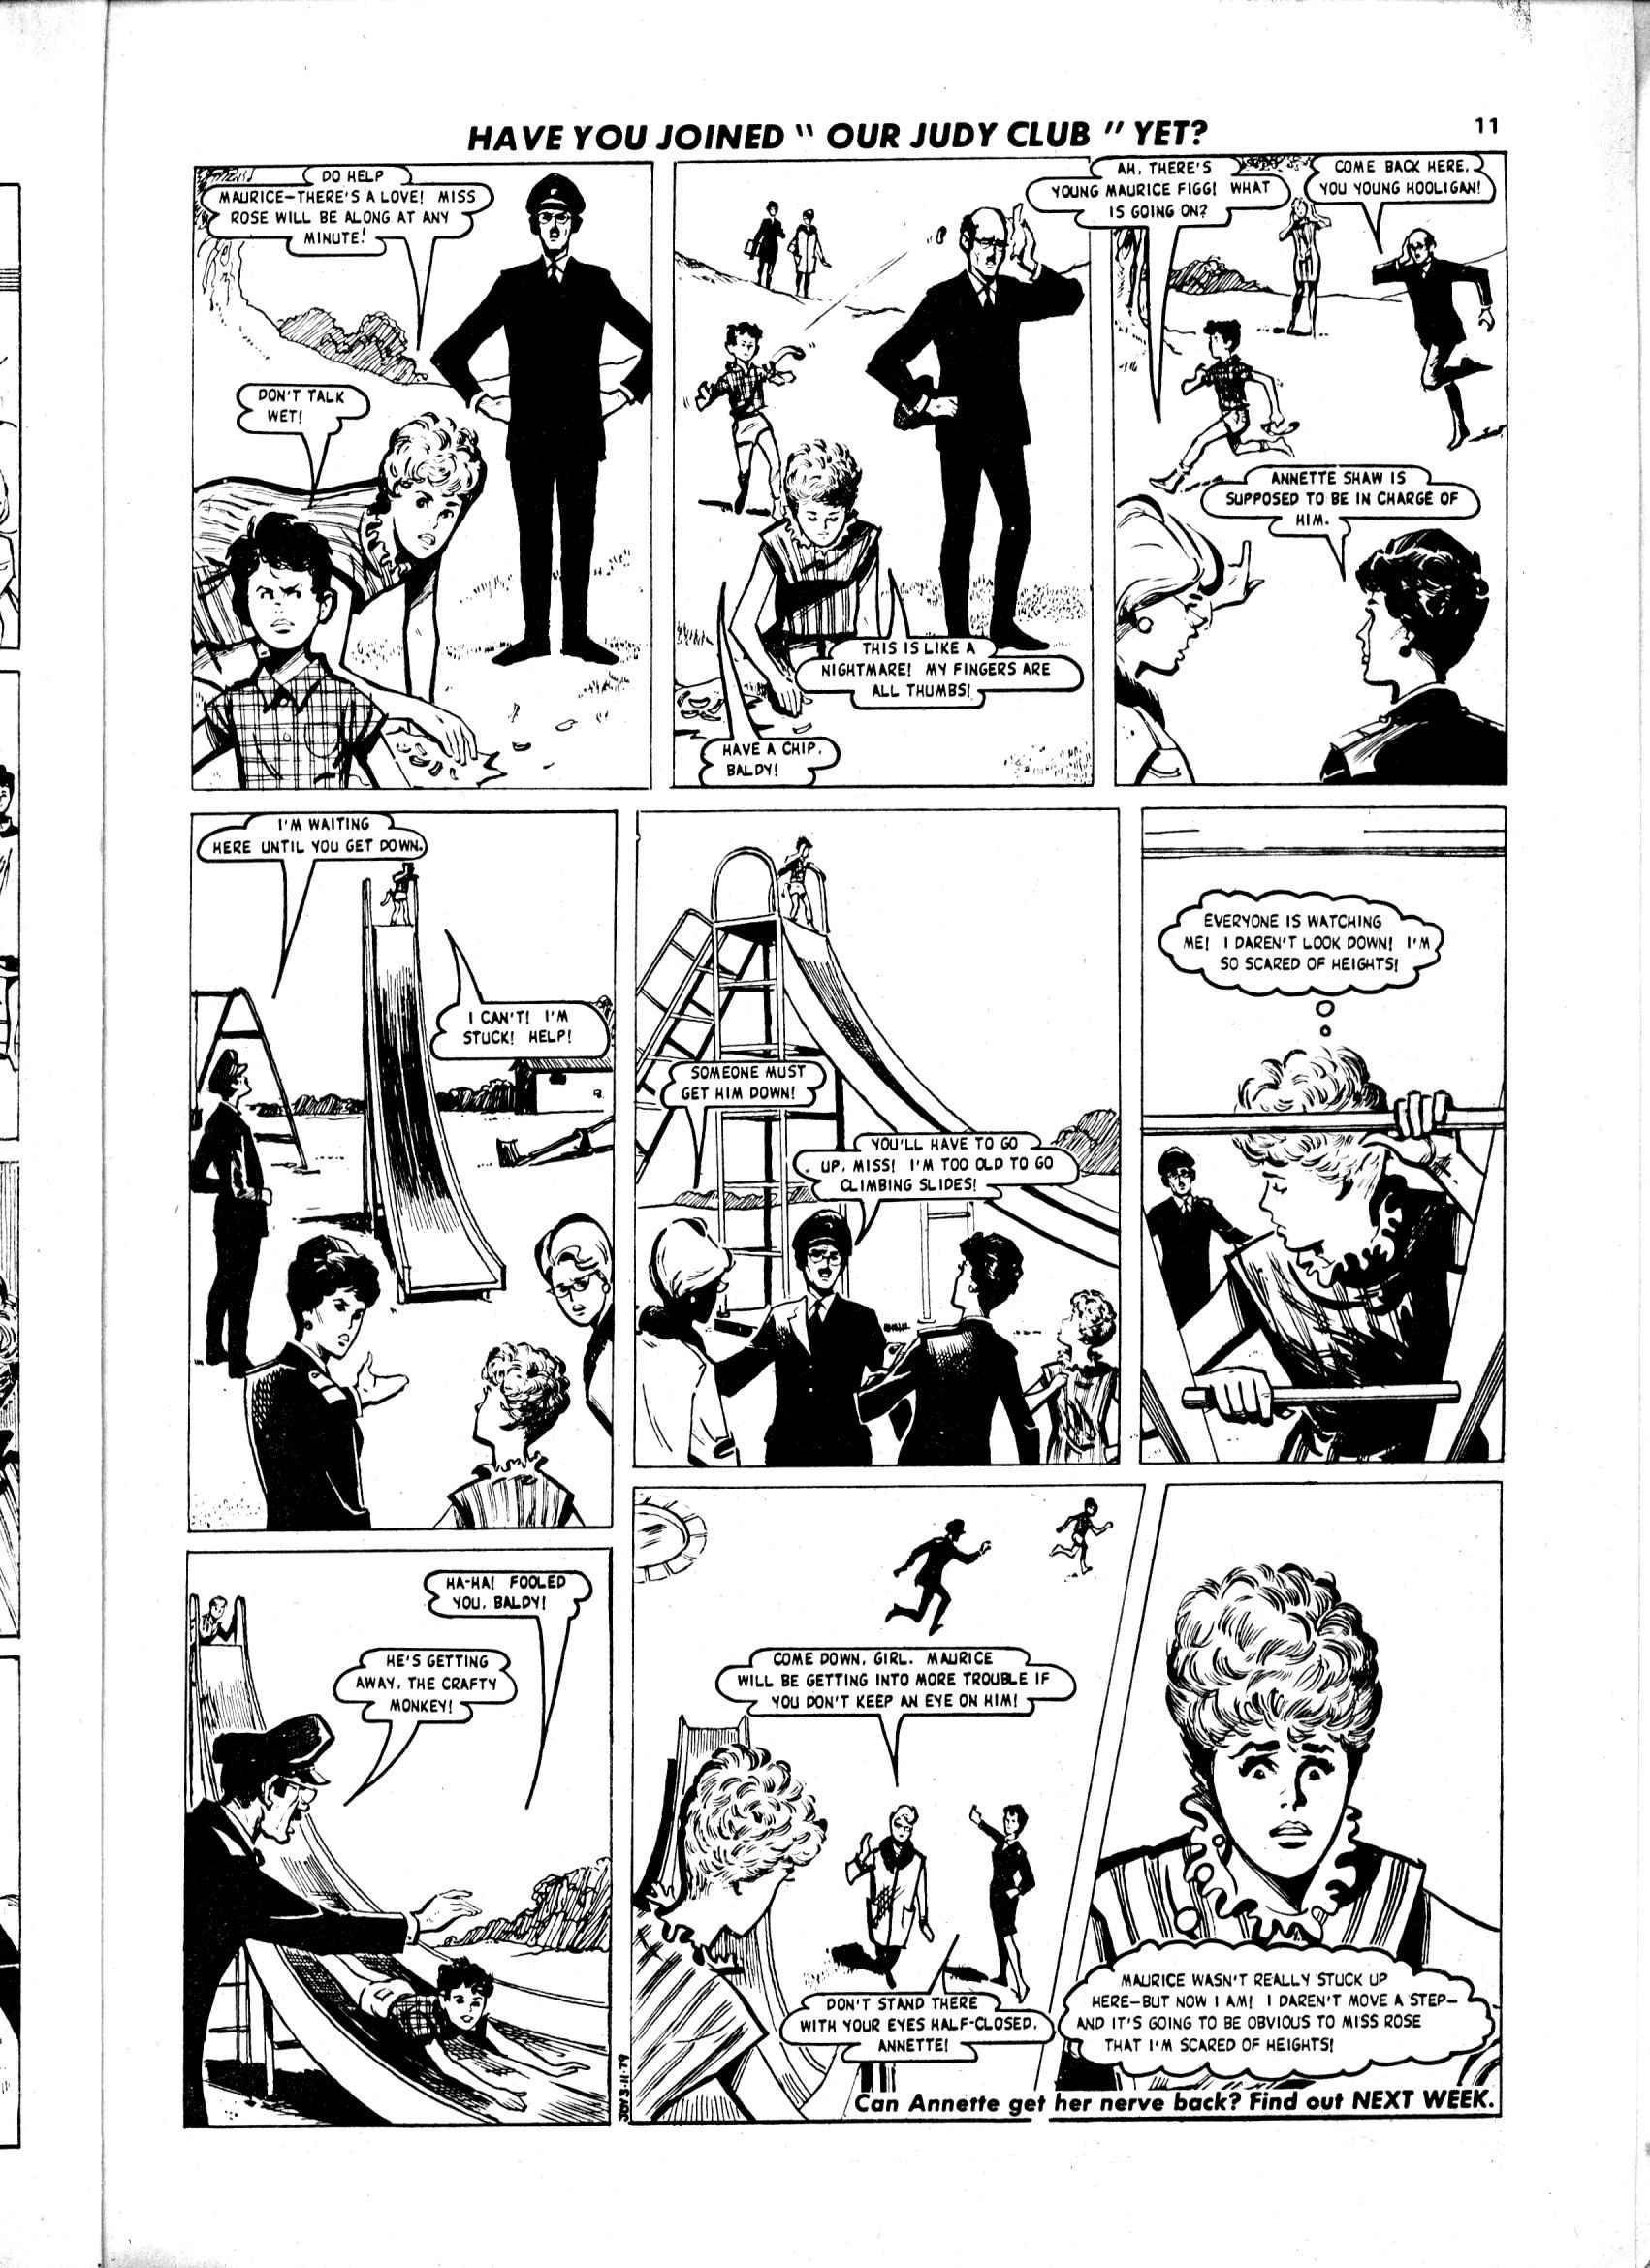 Read online Judy comic -  Issue #1034 - 11